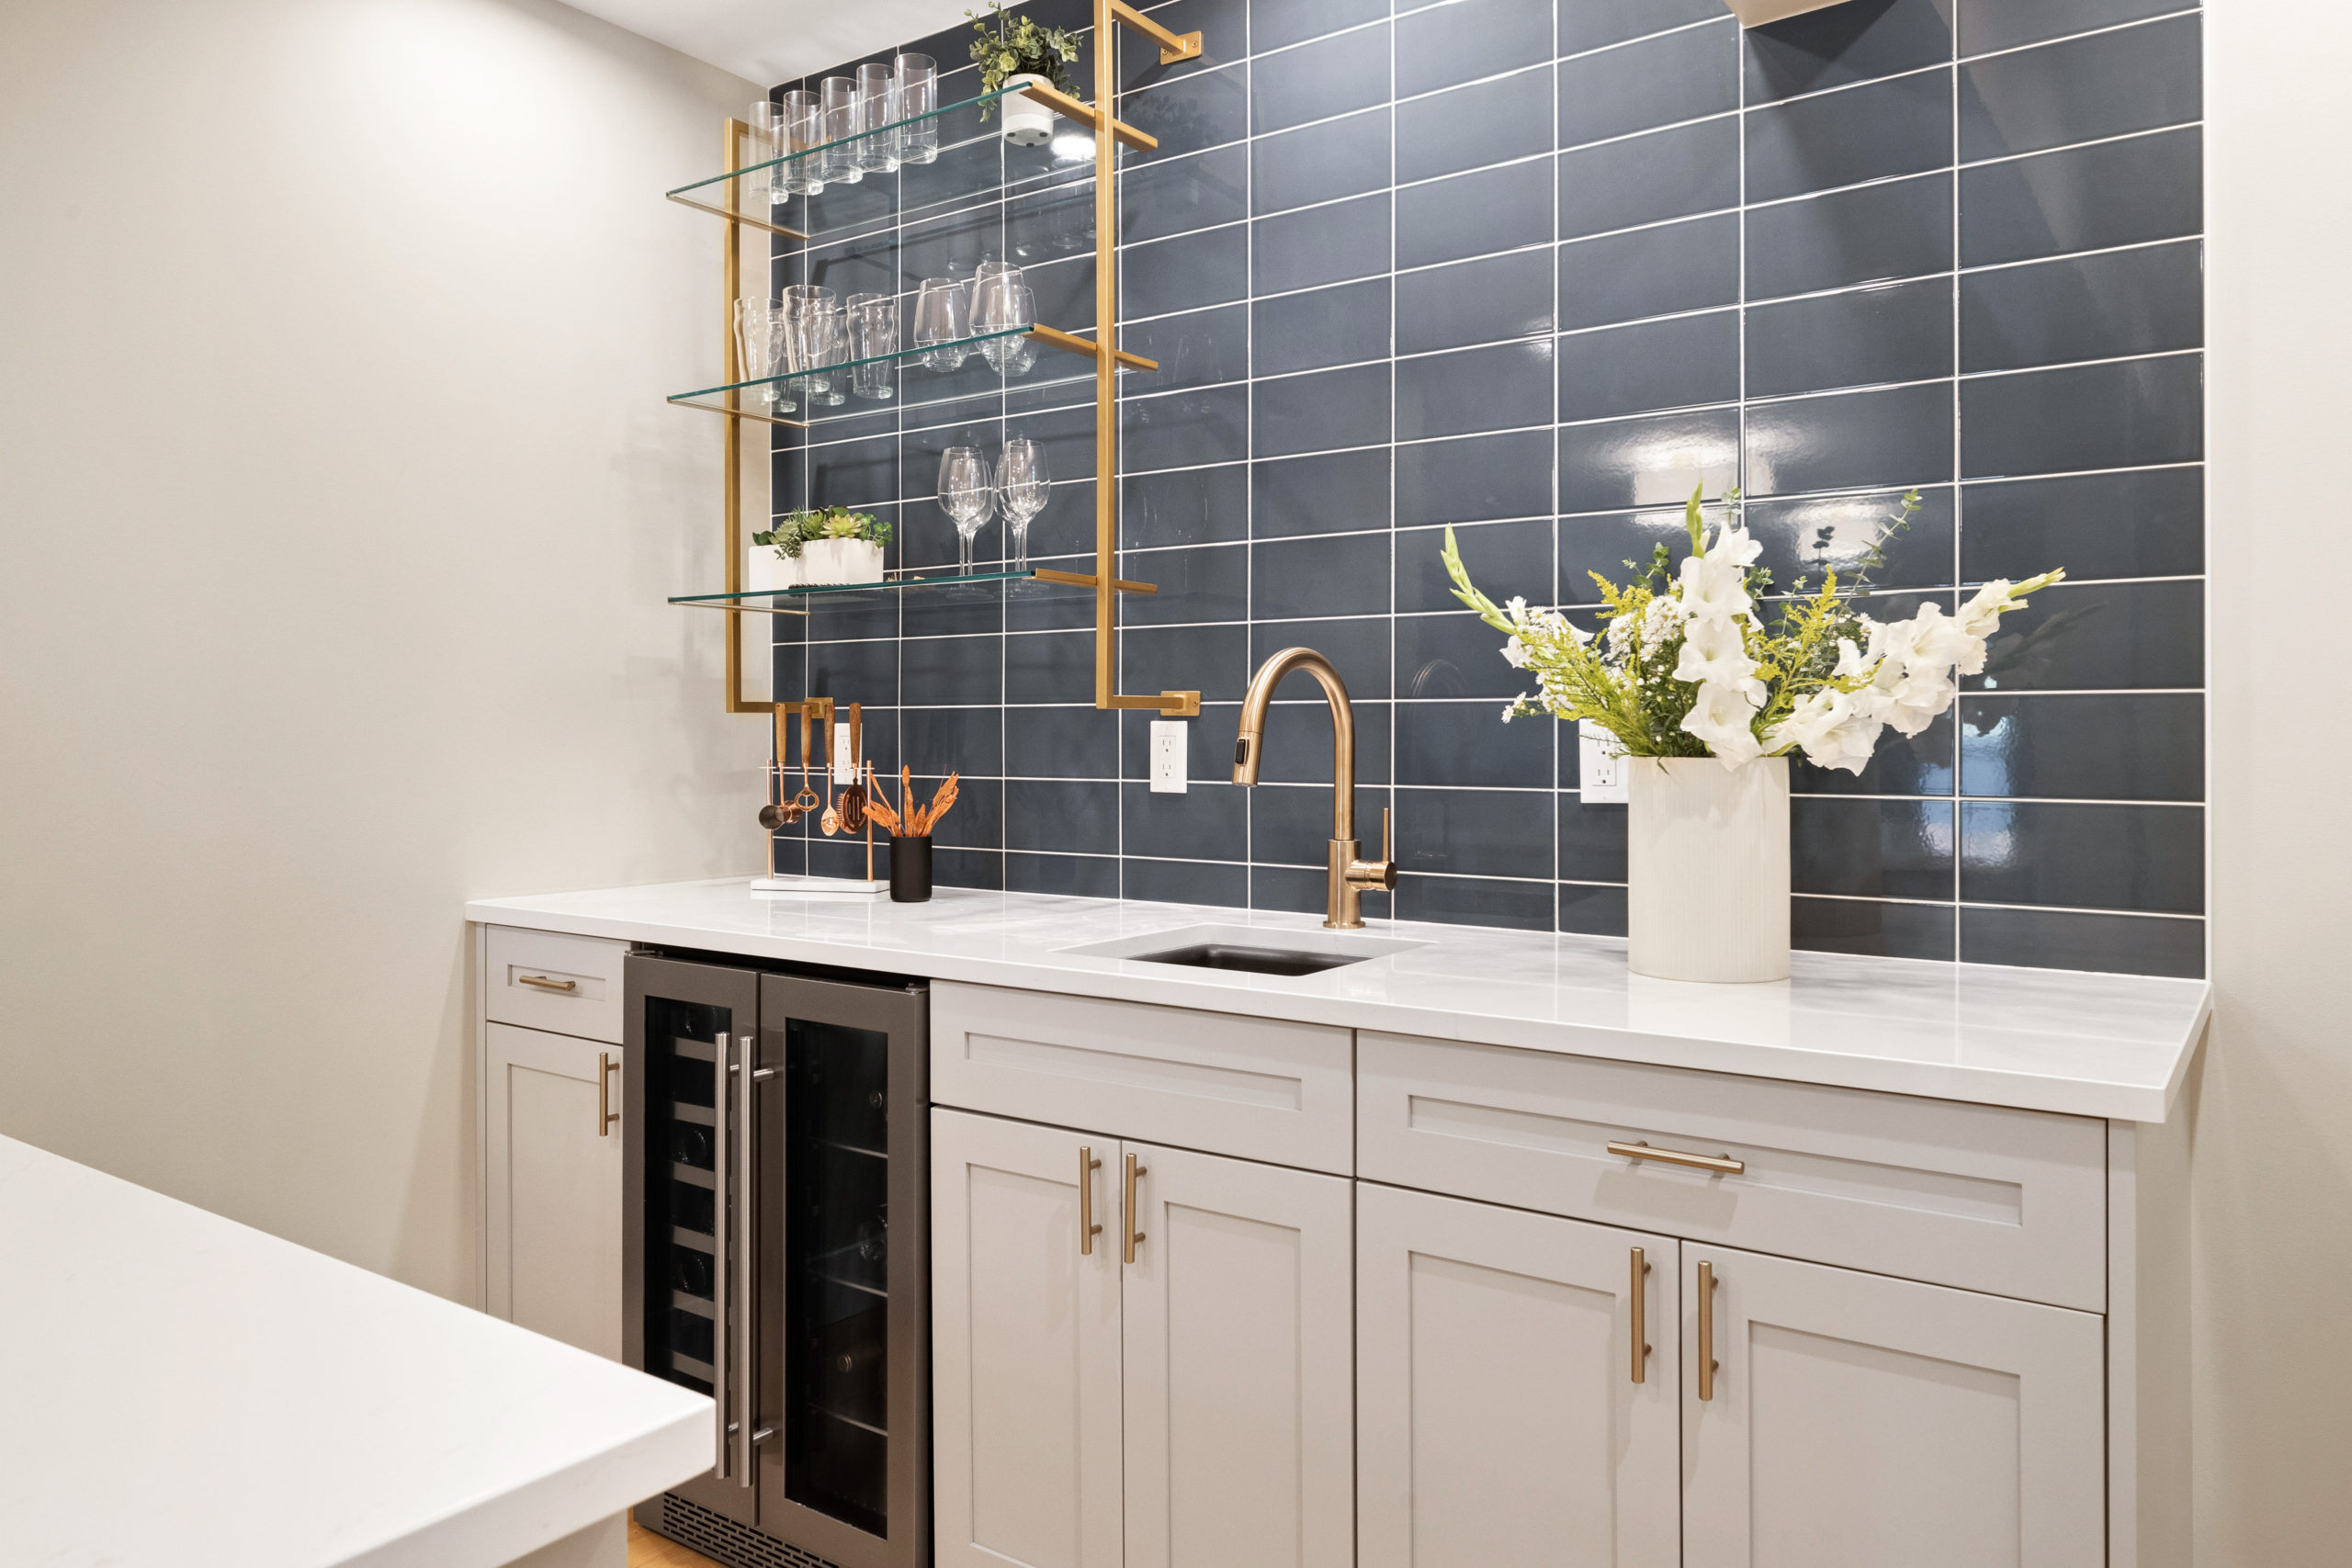 12 Different Ways to Lay Subway Tile | Pattern Ideas 5